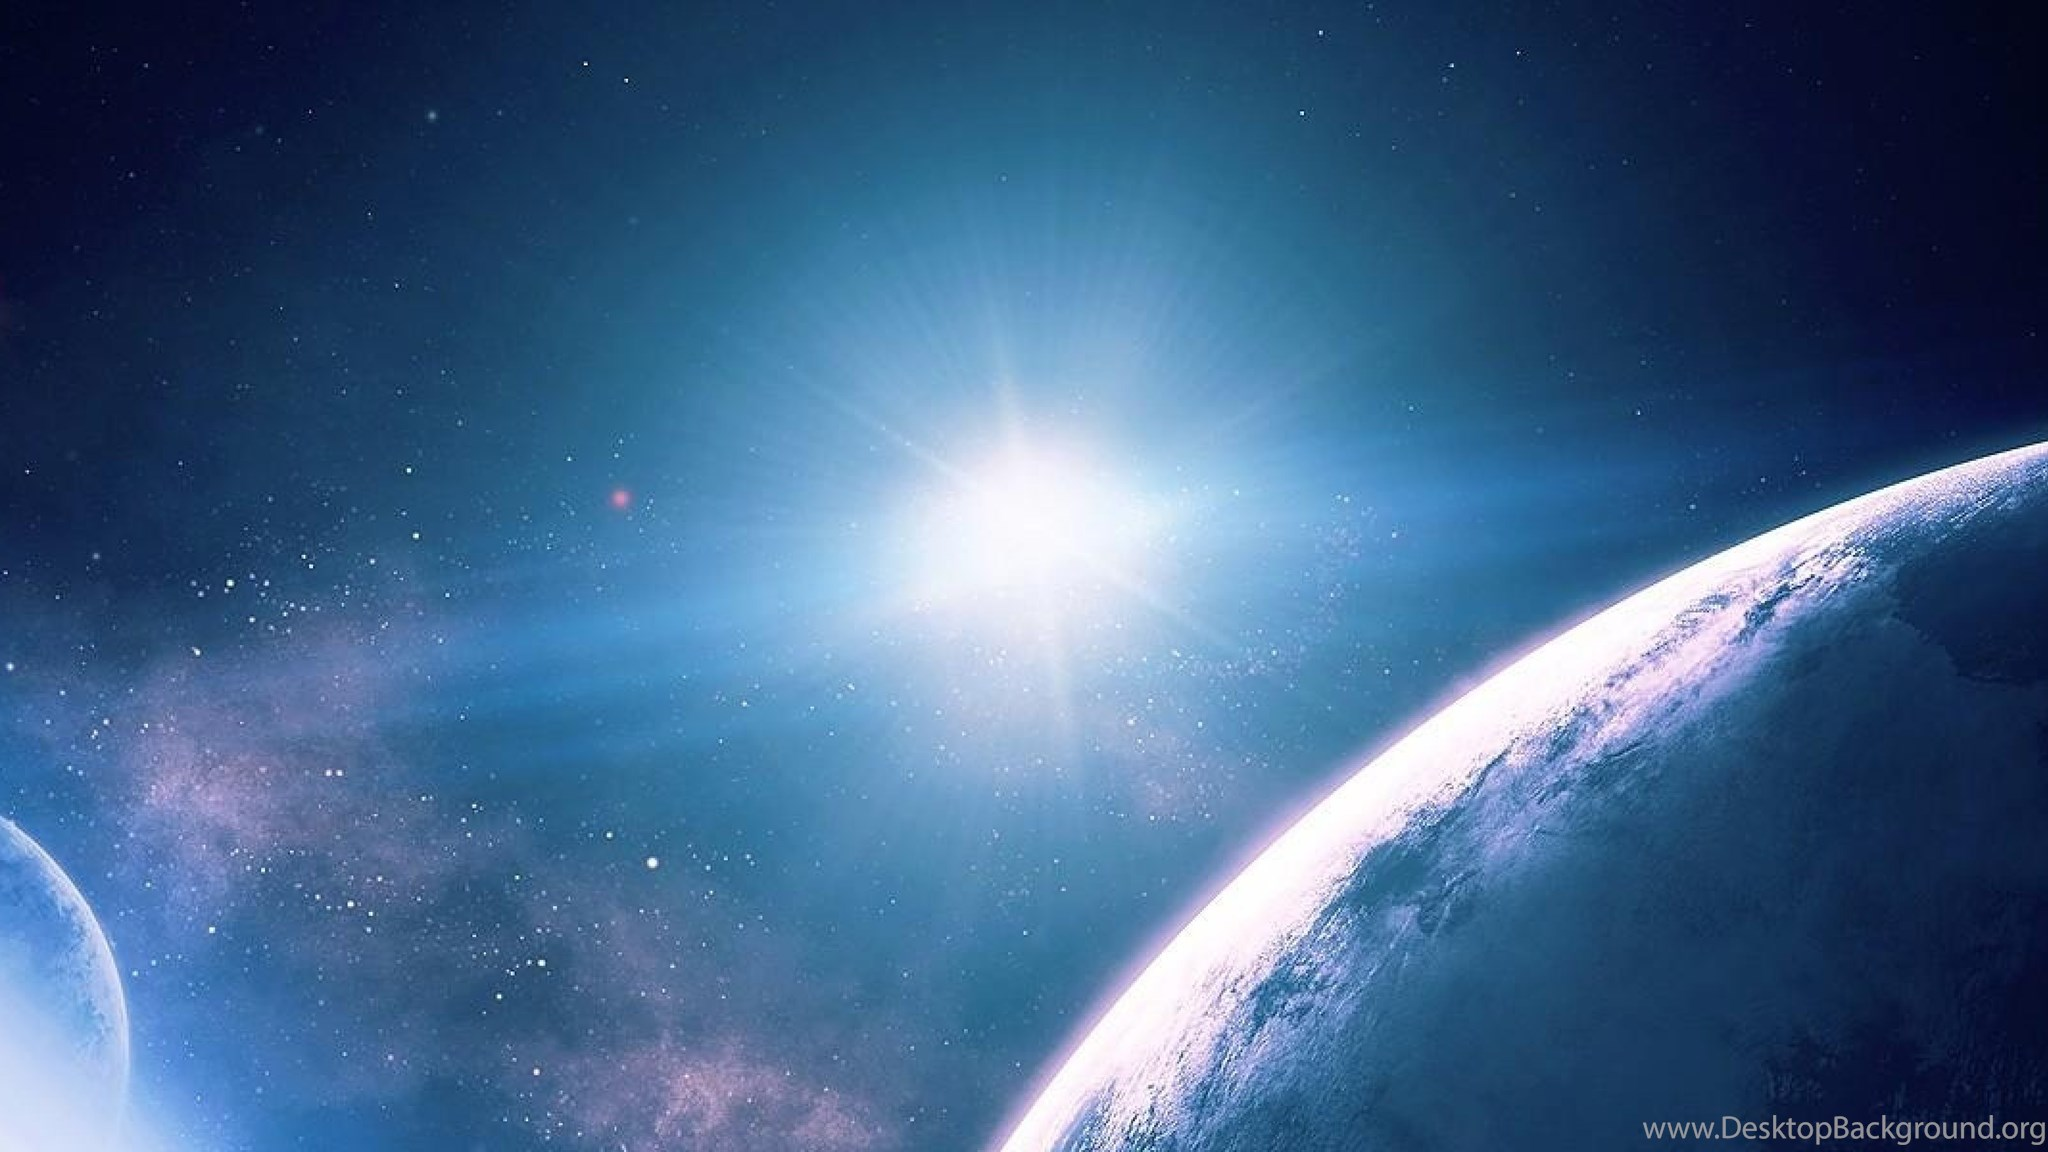 download wallpapers 3840x1200 planets, stars, rays, galaxy dual